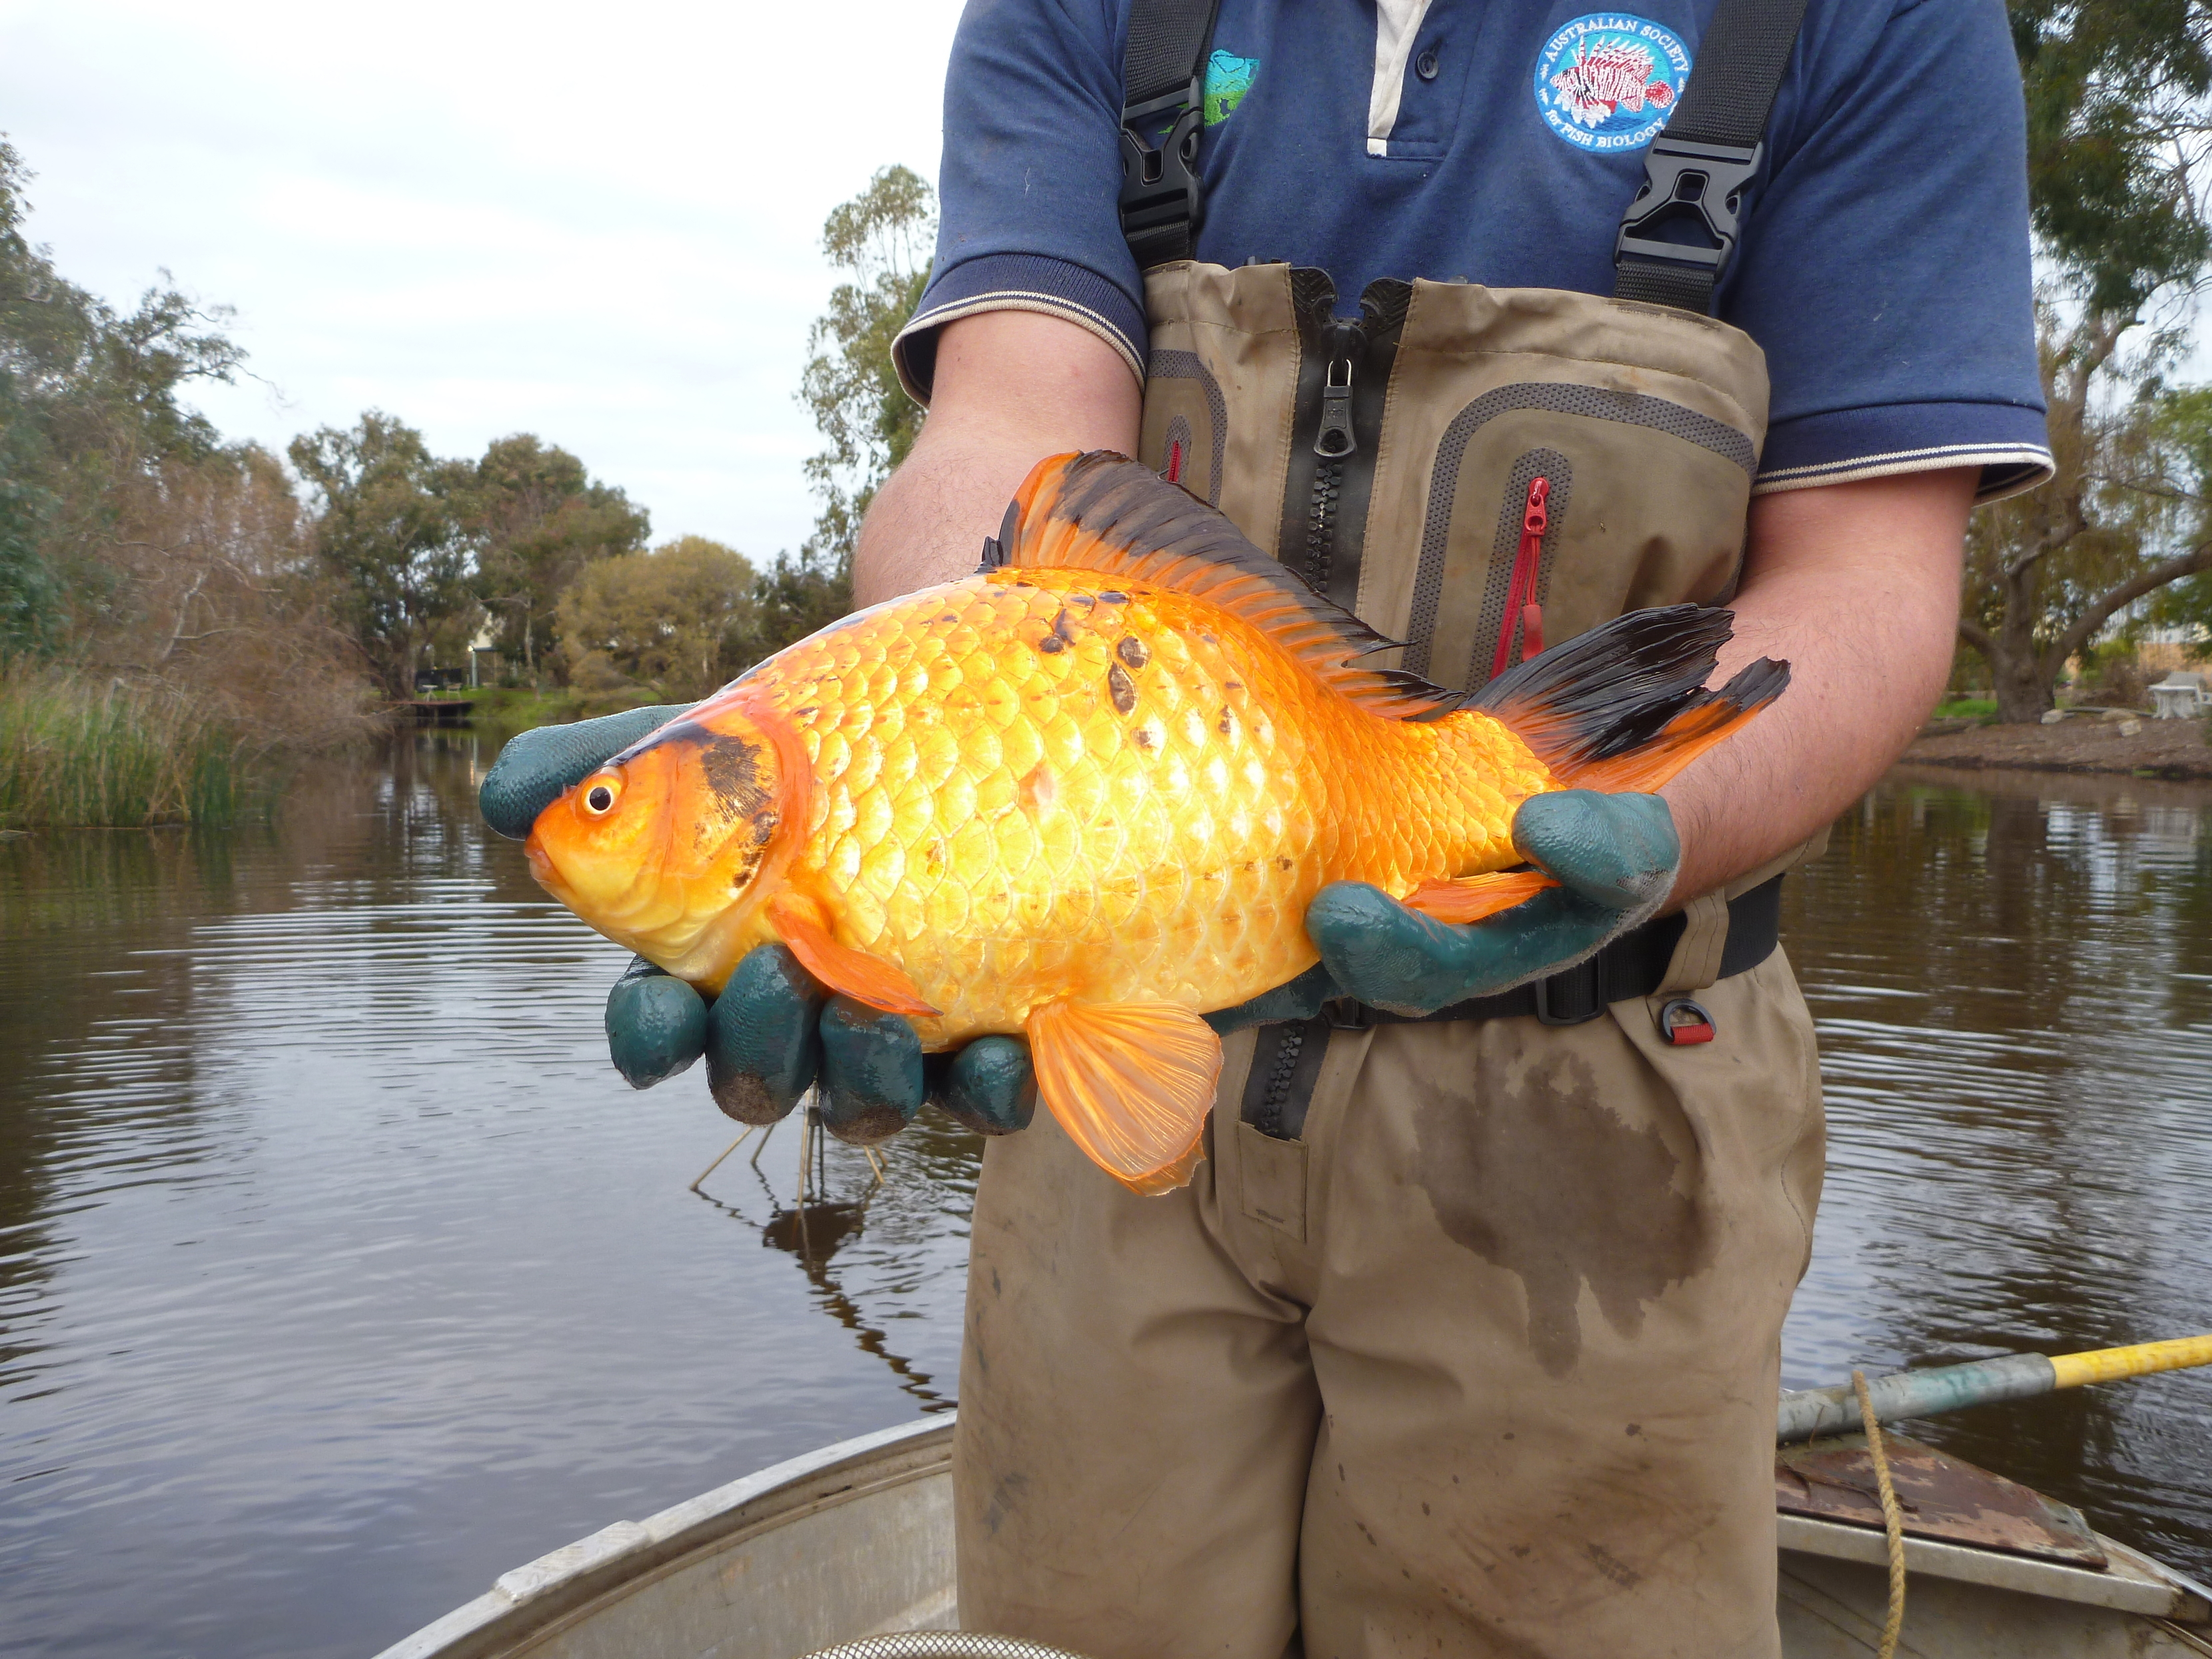 A goldfish found in the Vasse river